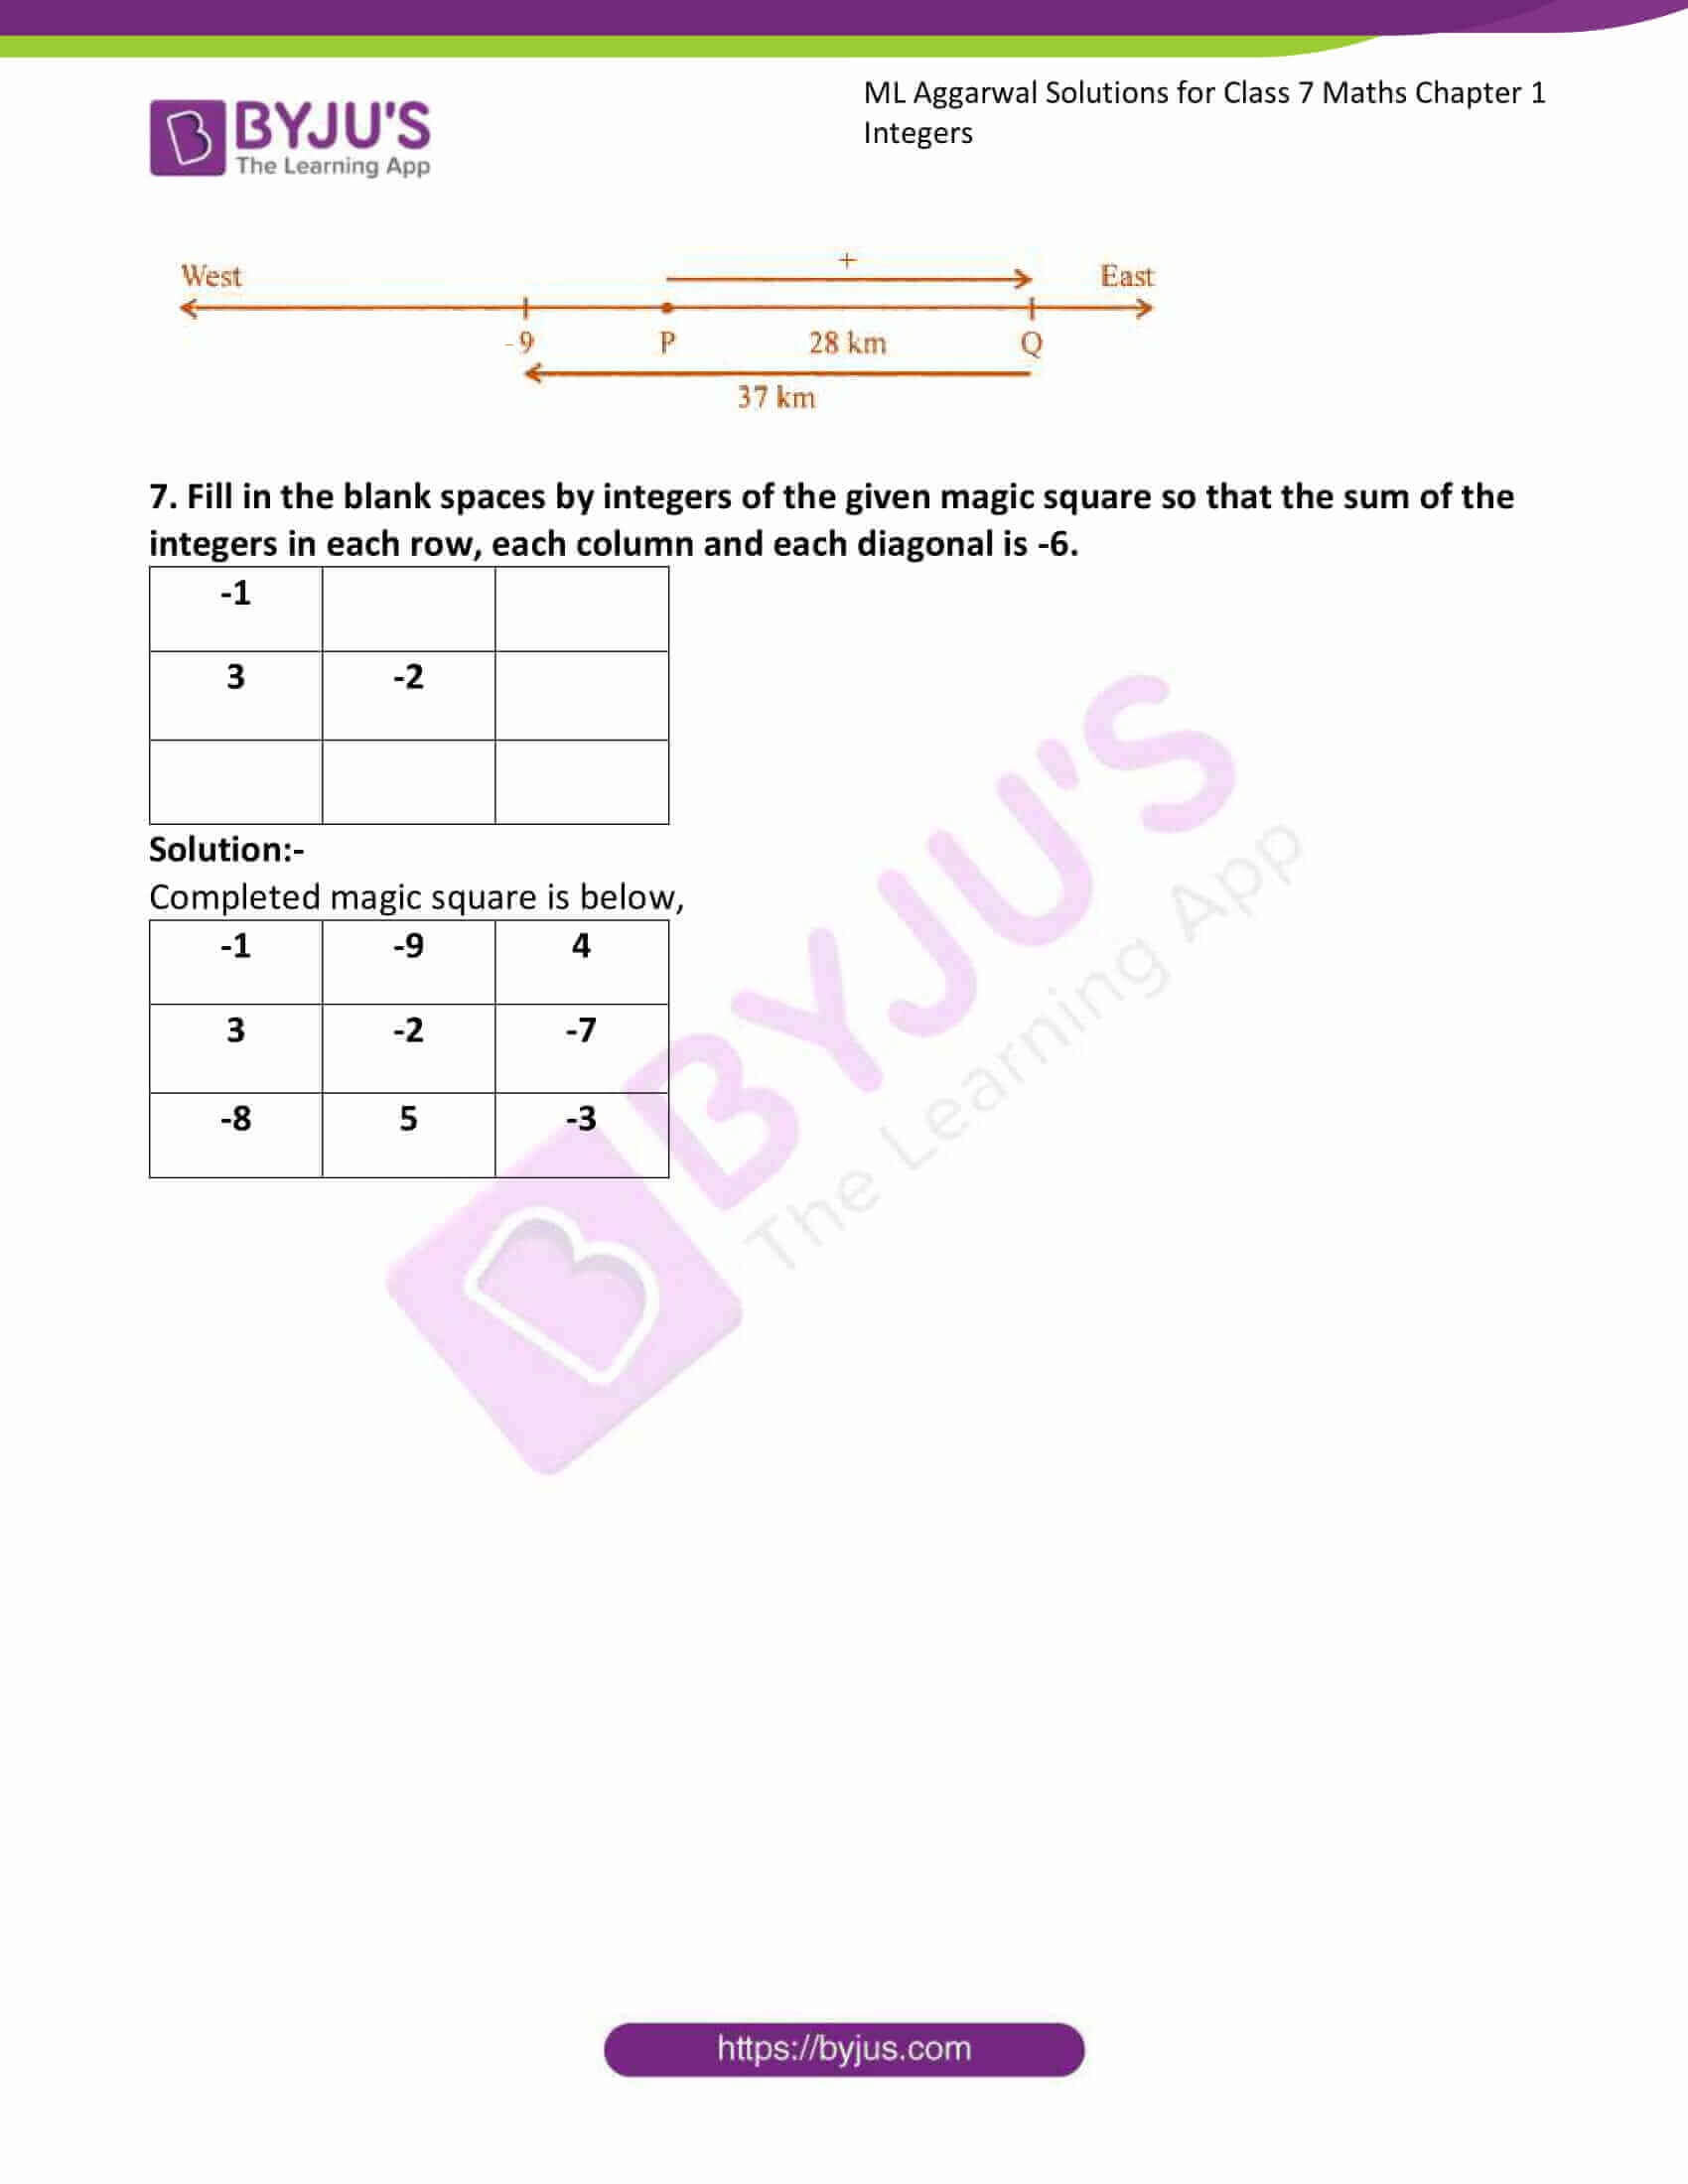 ml aggarwal solutions for class 7 maths chapter 1 3